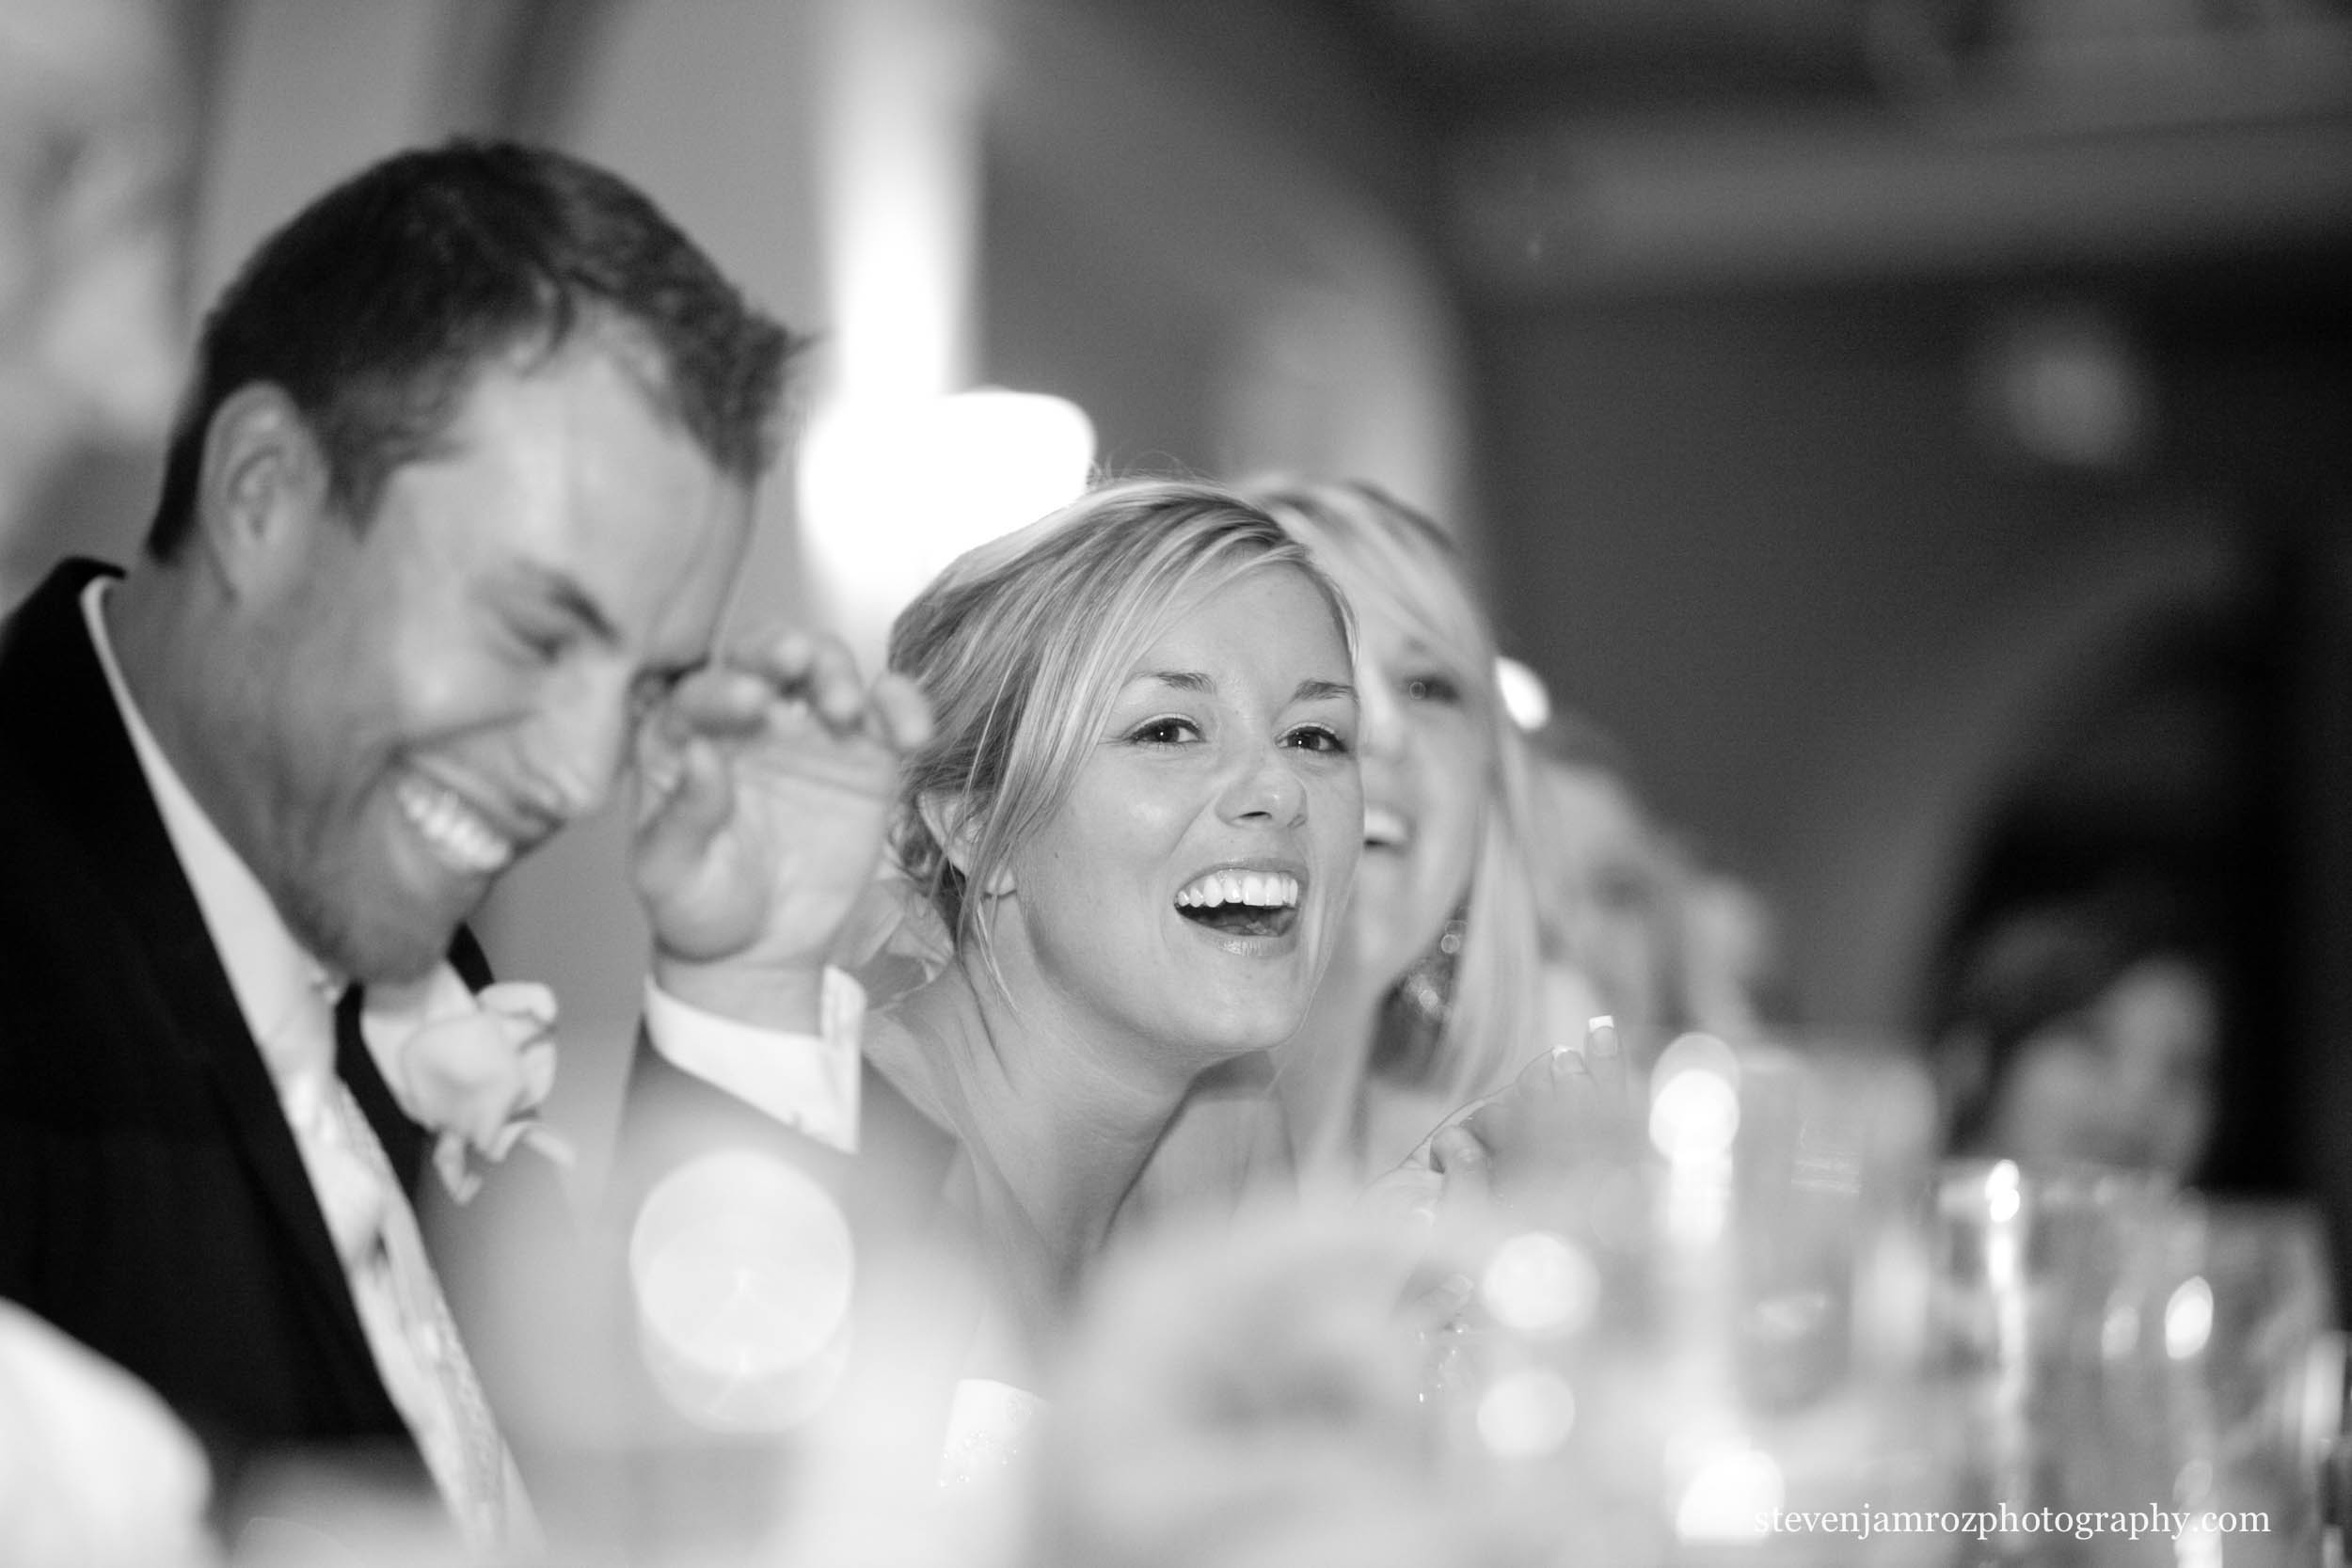 reception-wedding-photojournalism-reaction-raleigh-nc-steven-jamroz-photography-0059.jpg